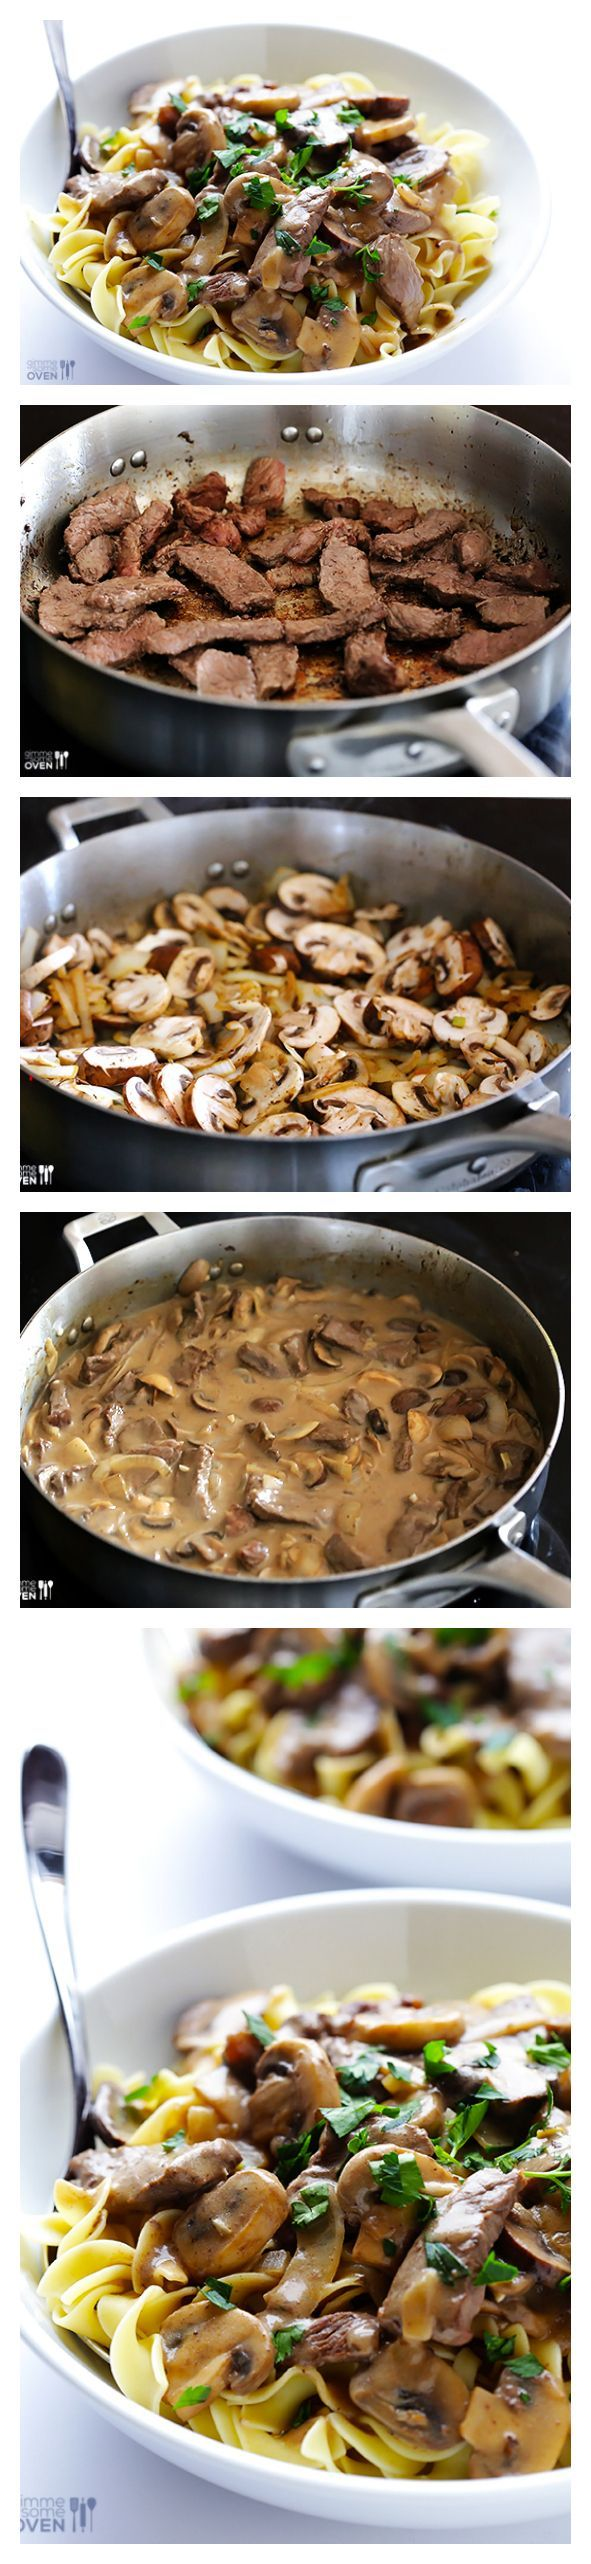 Beef Stroganoff -- a classic comfort food dish that's lightened up and ready to go in 30 minutes | gimmesomeoven.com